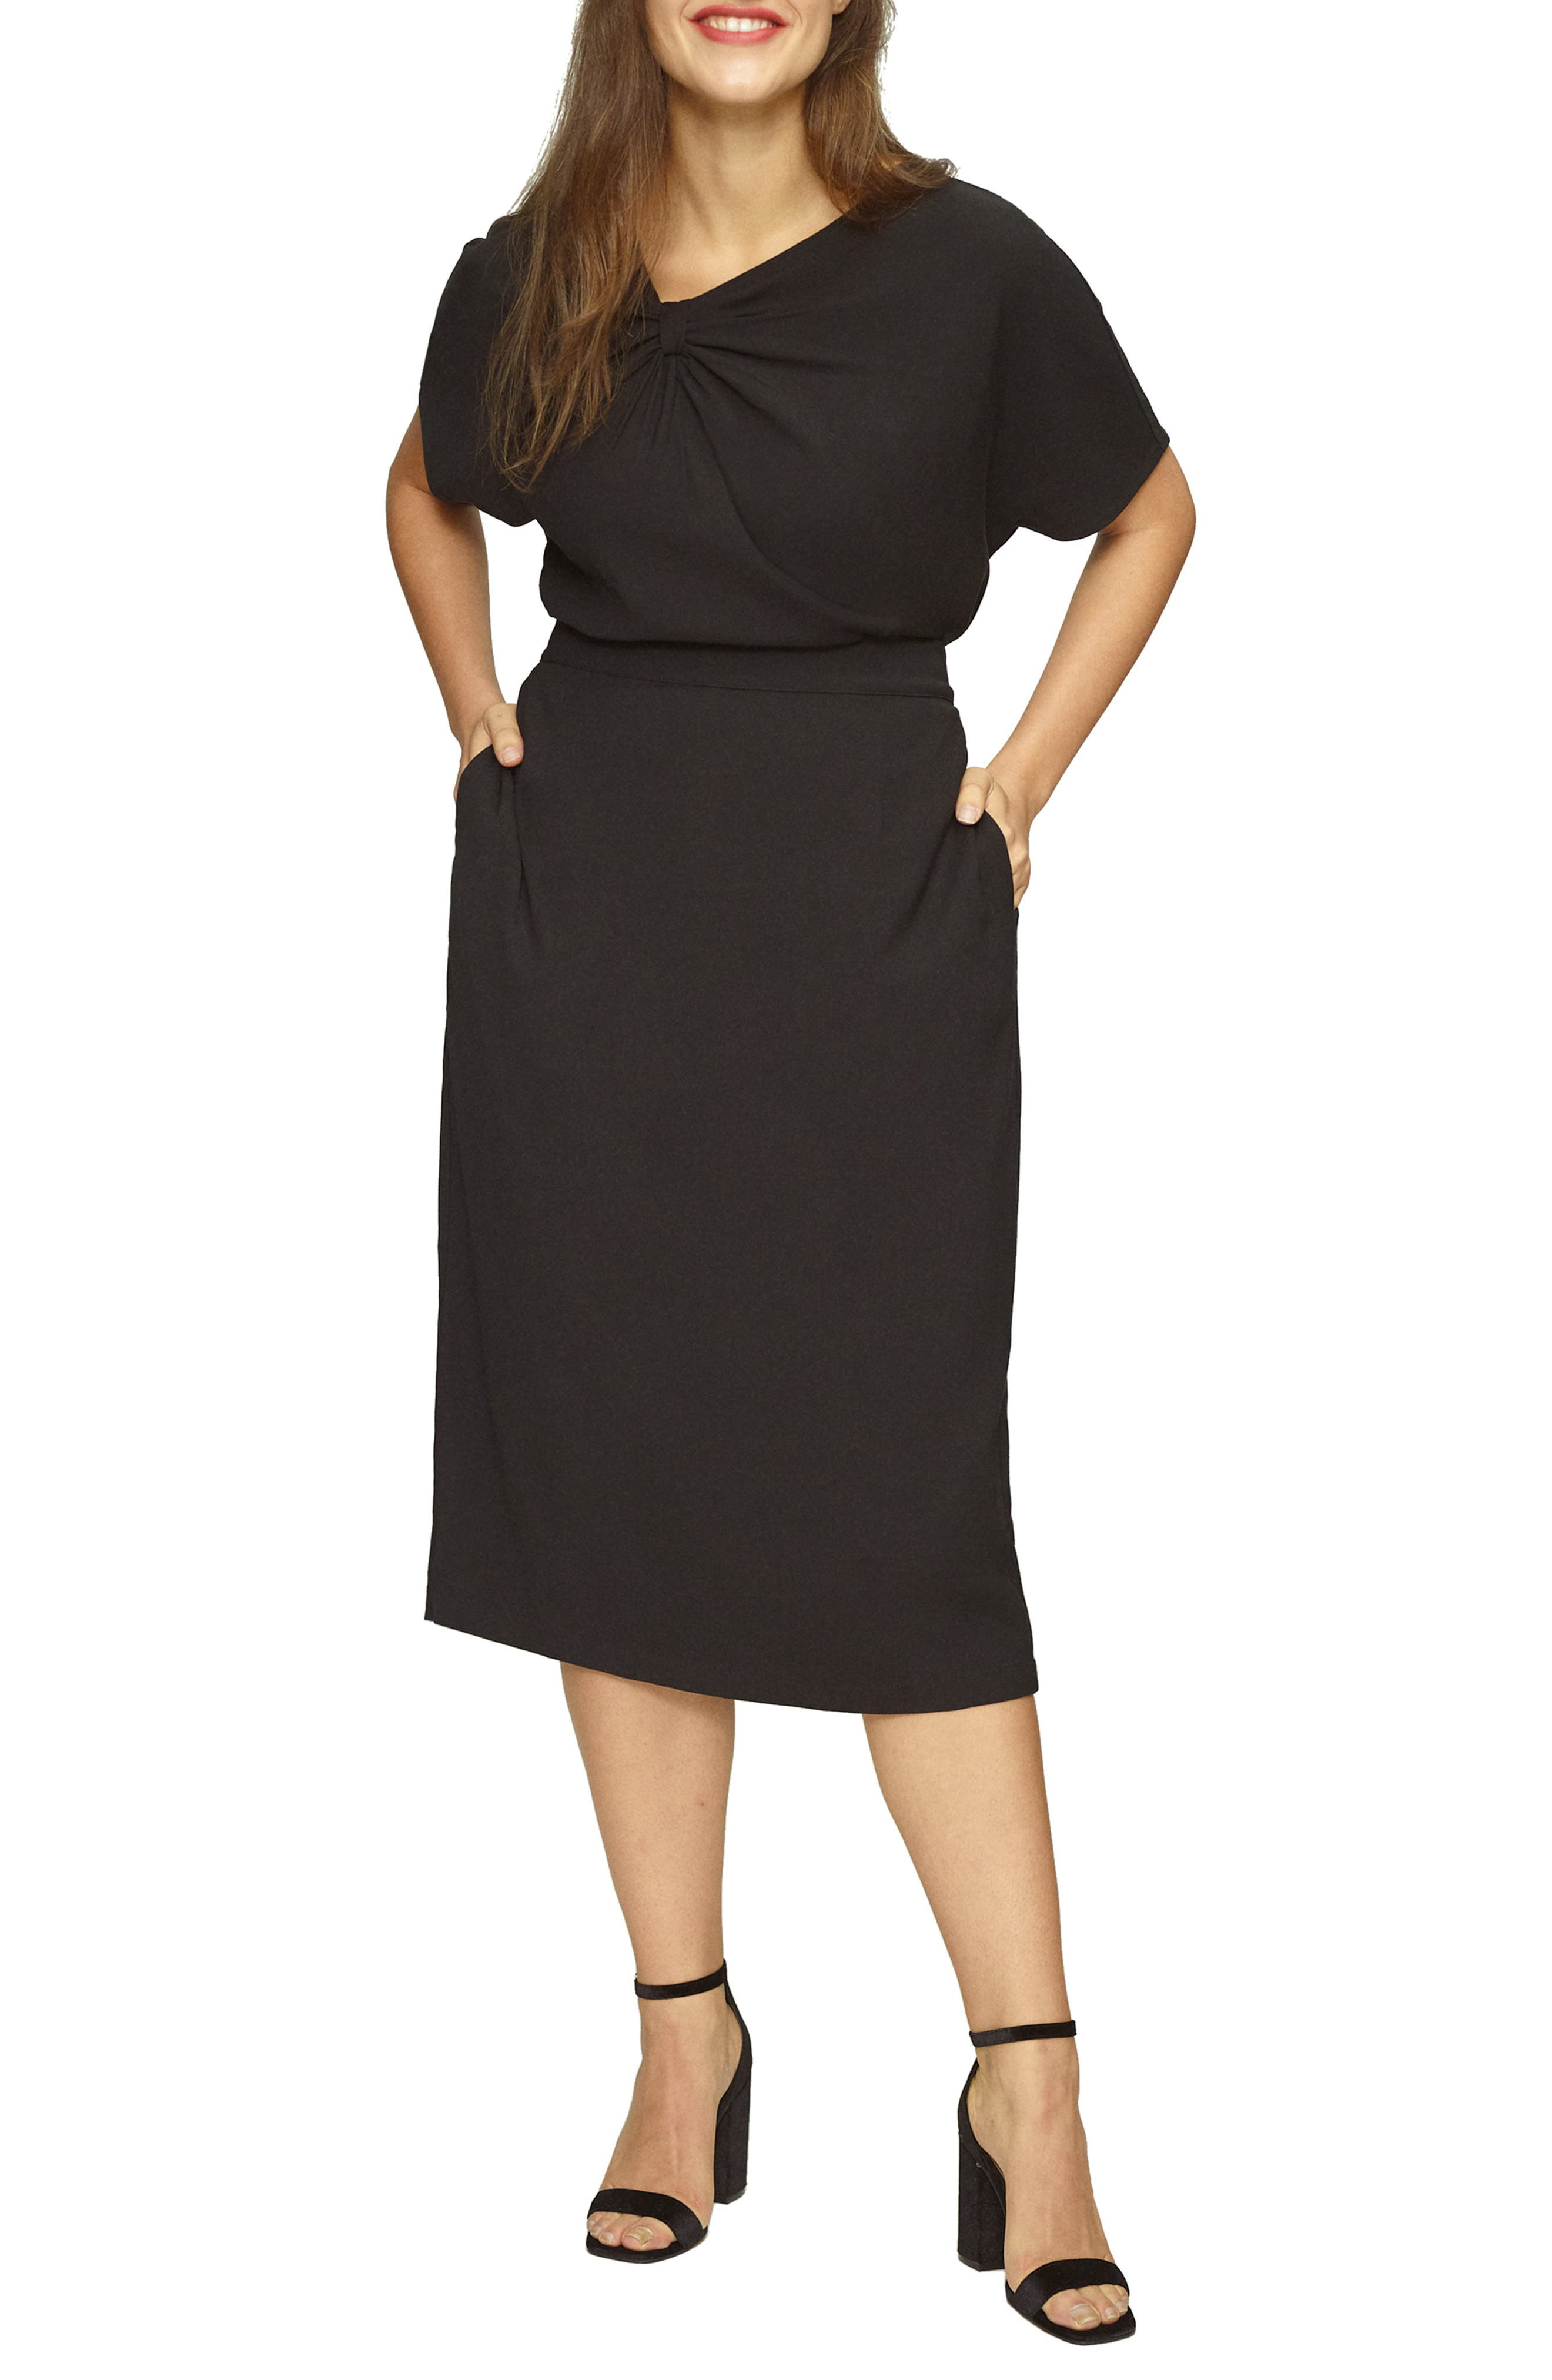 UNIVERSAL STANDARD, Twill Pencil Skirt, Main thumbnail 1, color, 001